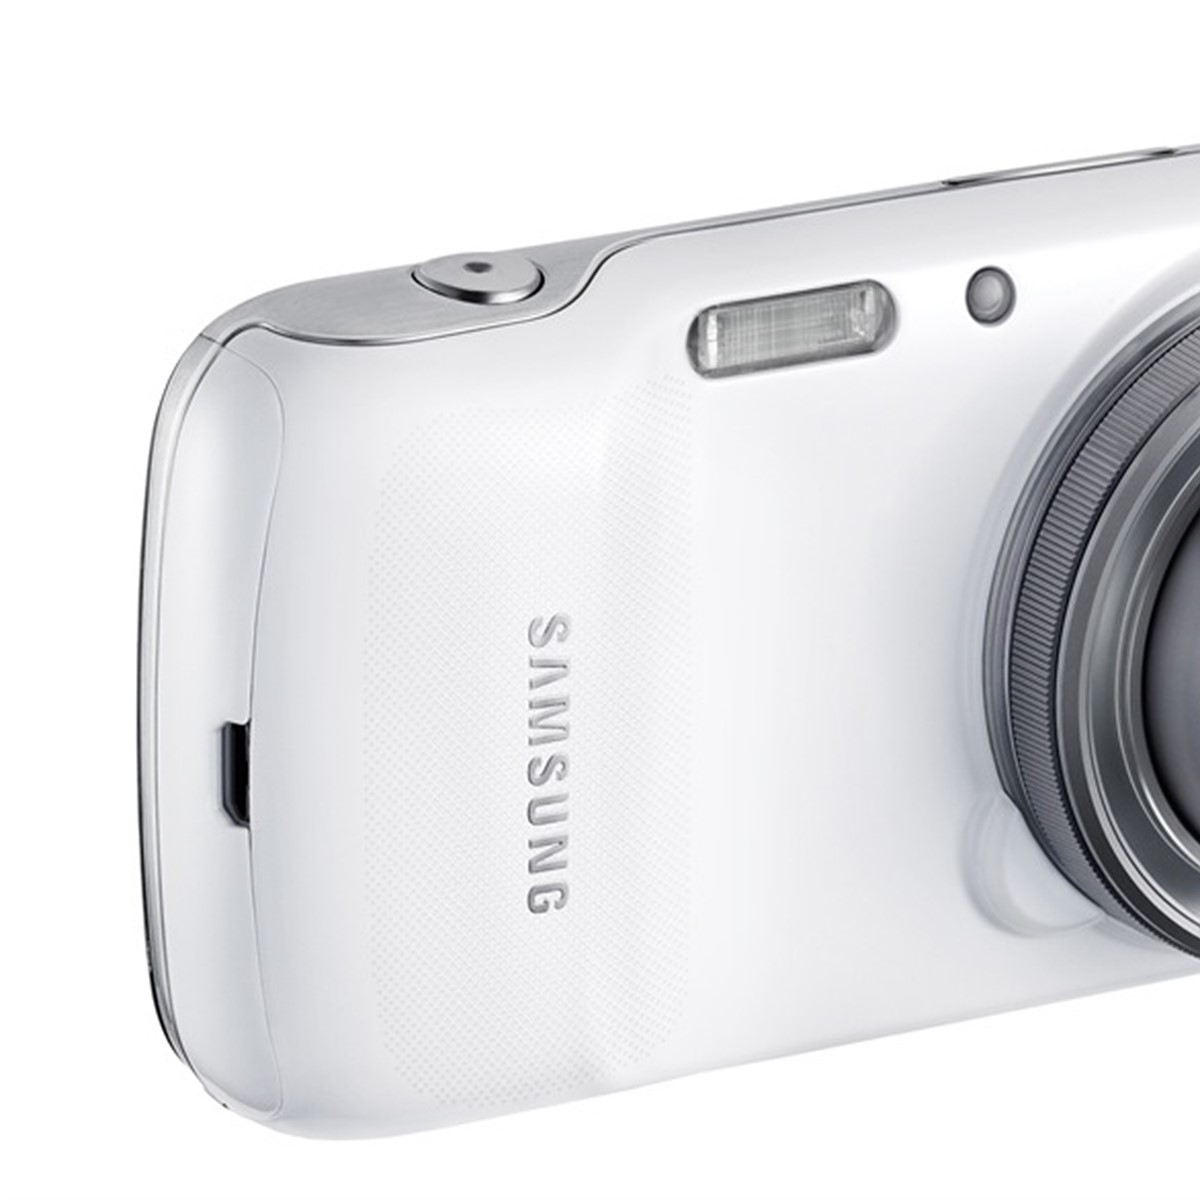 Samsung Unveils Galaxy S4 Zoom Camera Phone Hybrid Digital K 8gb White Photography Review